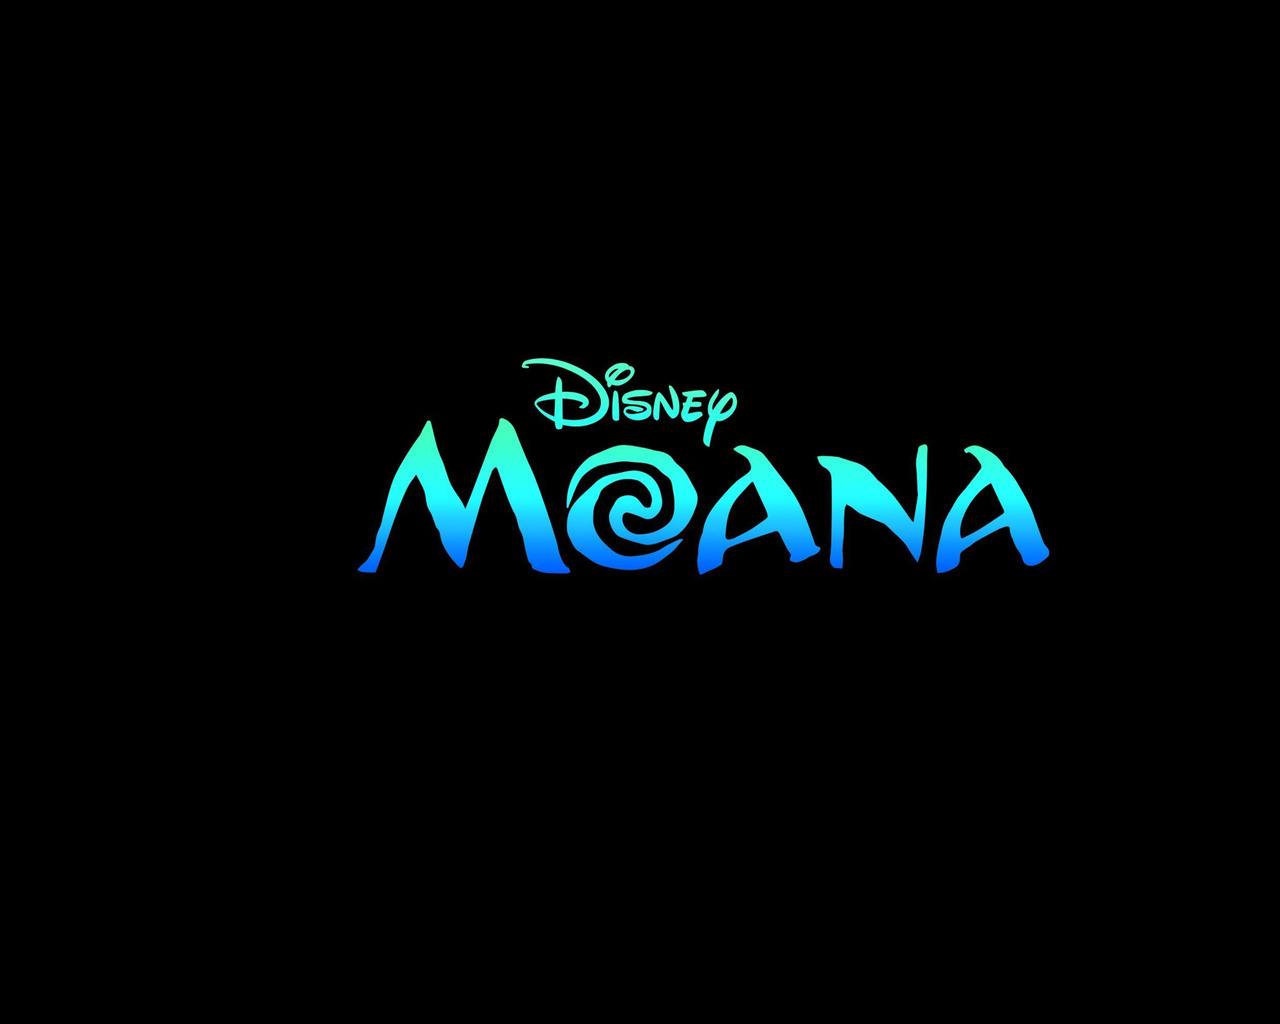 1280x1024 Moana Movie Logo 1280x1024 Resolution Hd 4k